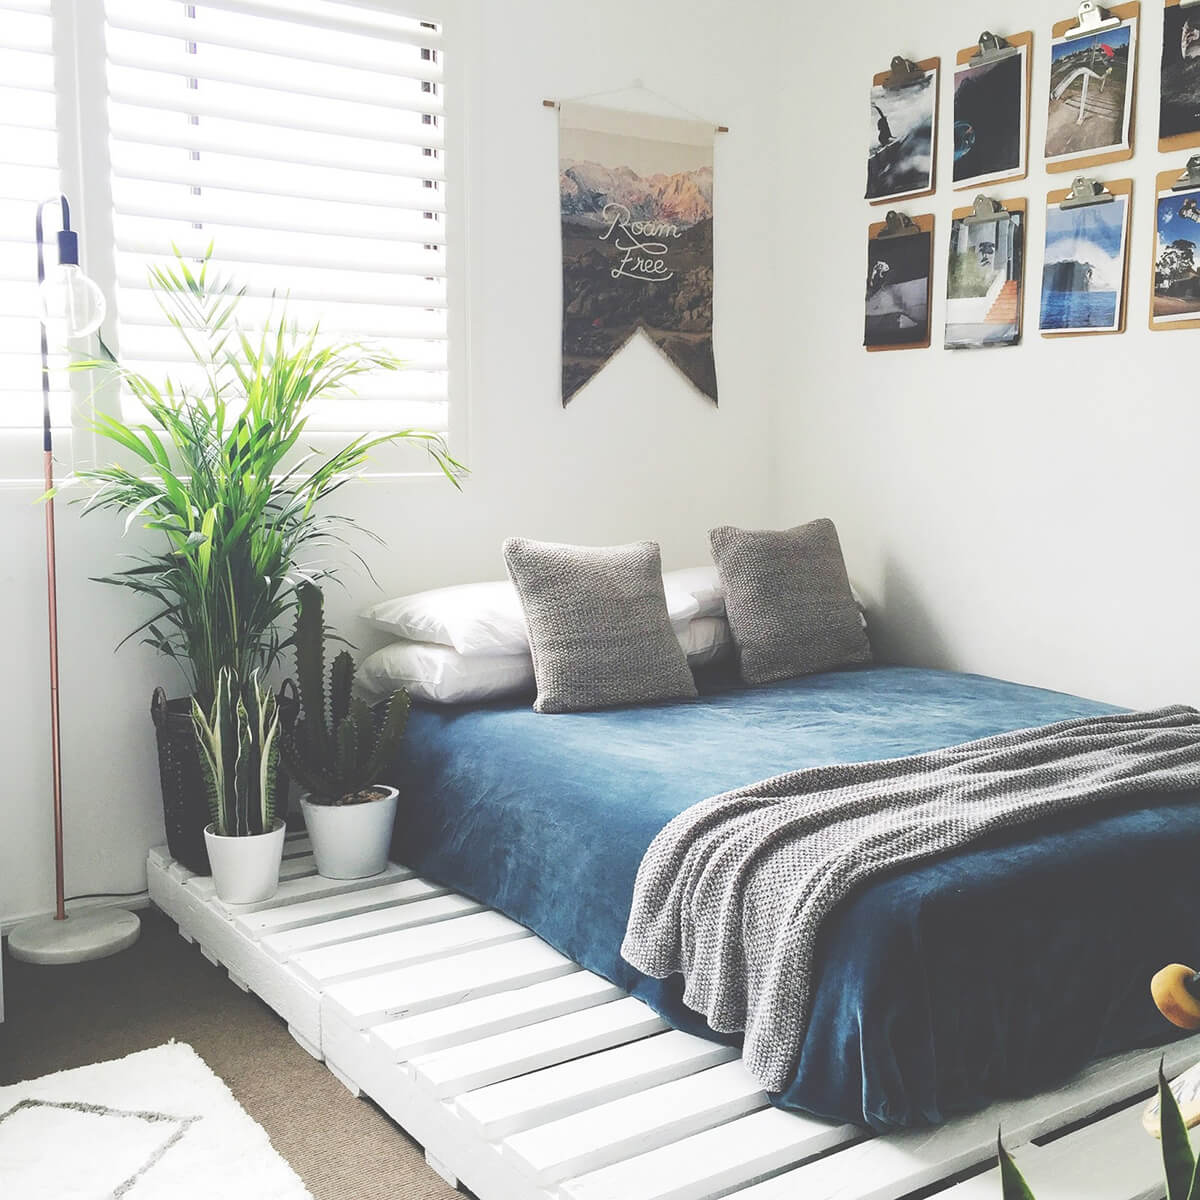 20 Best DIY Pallet Bed Frame Ideas to Update Your Bedroom ... on Pallet Room Ideas  id=32219